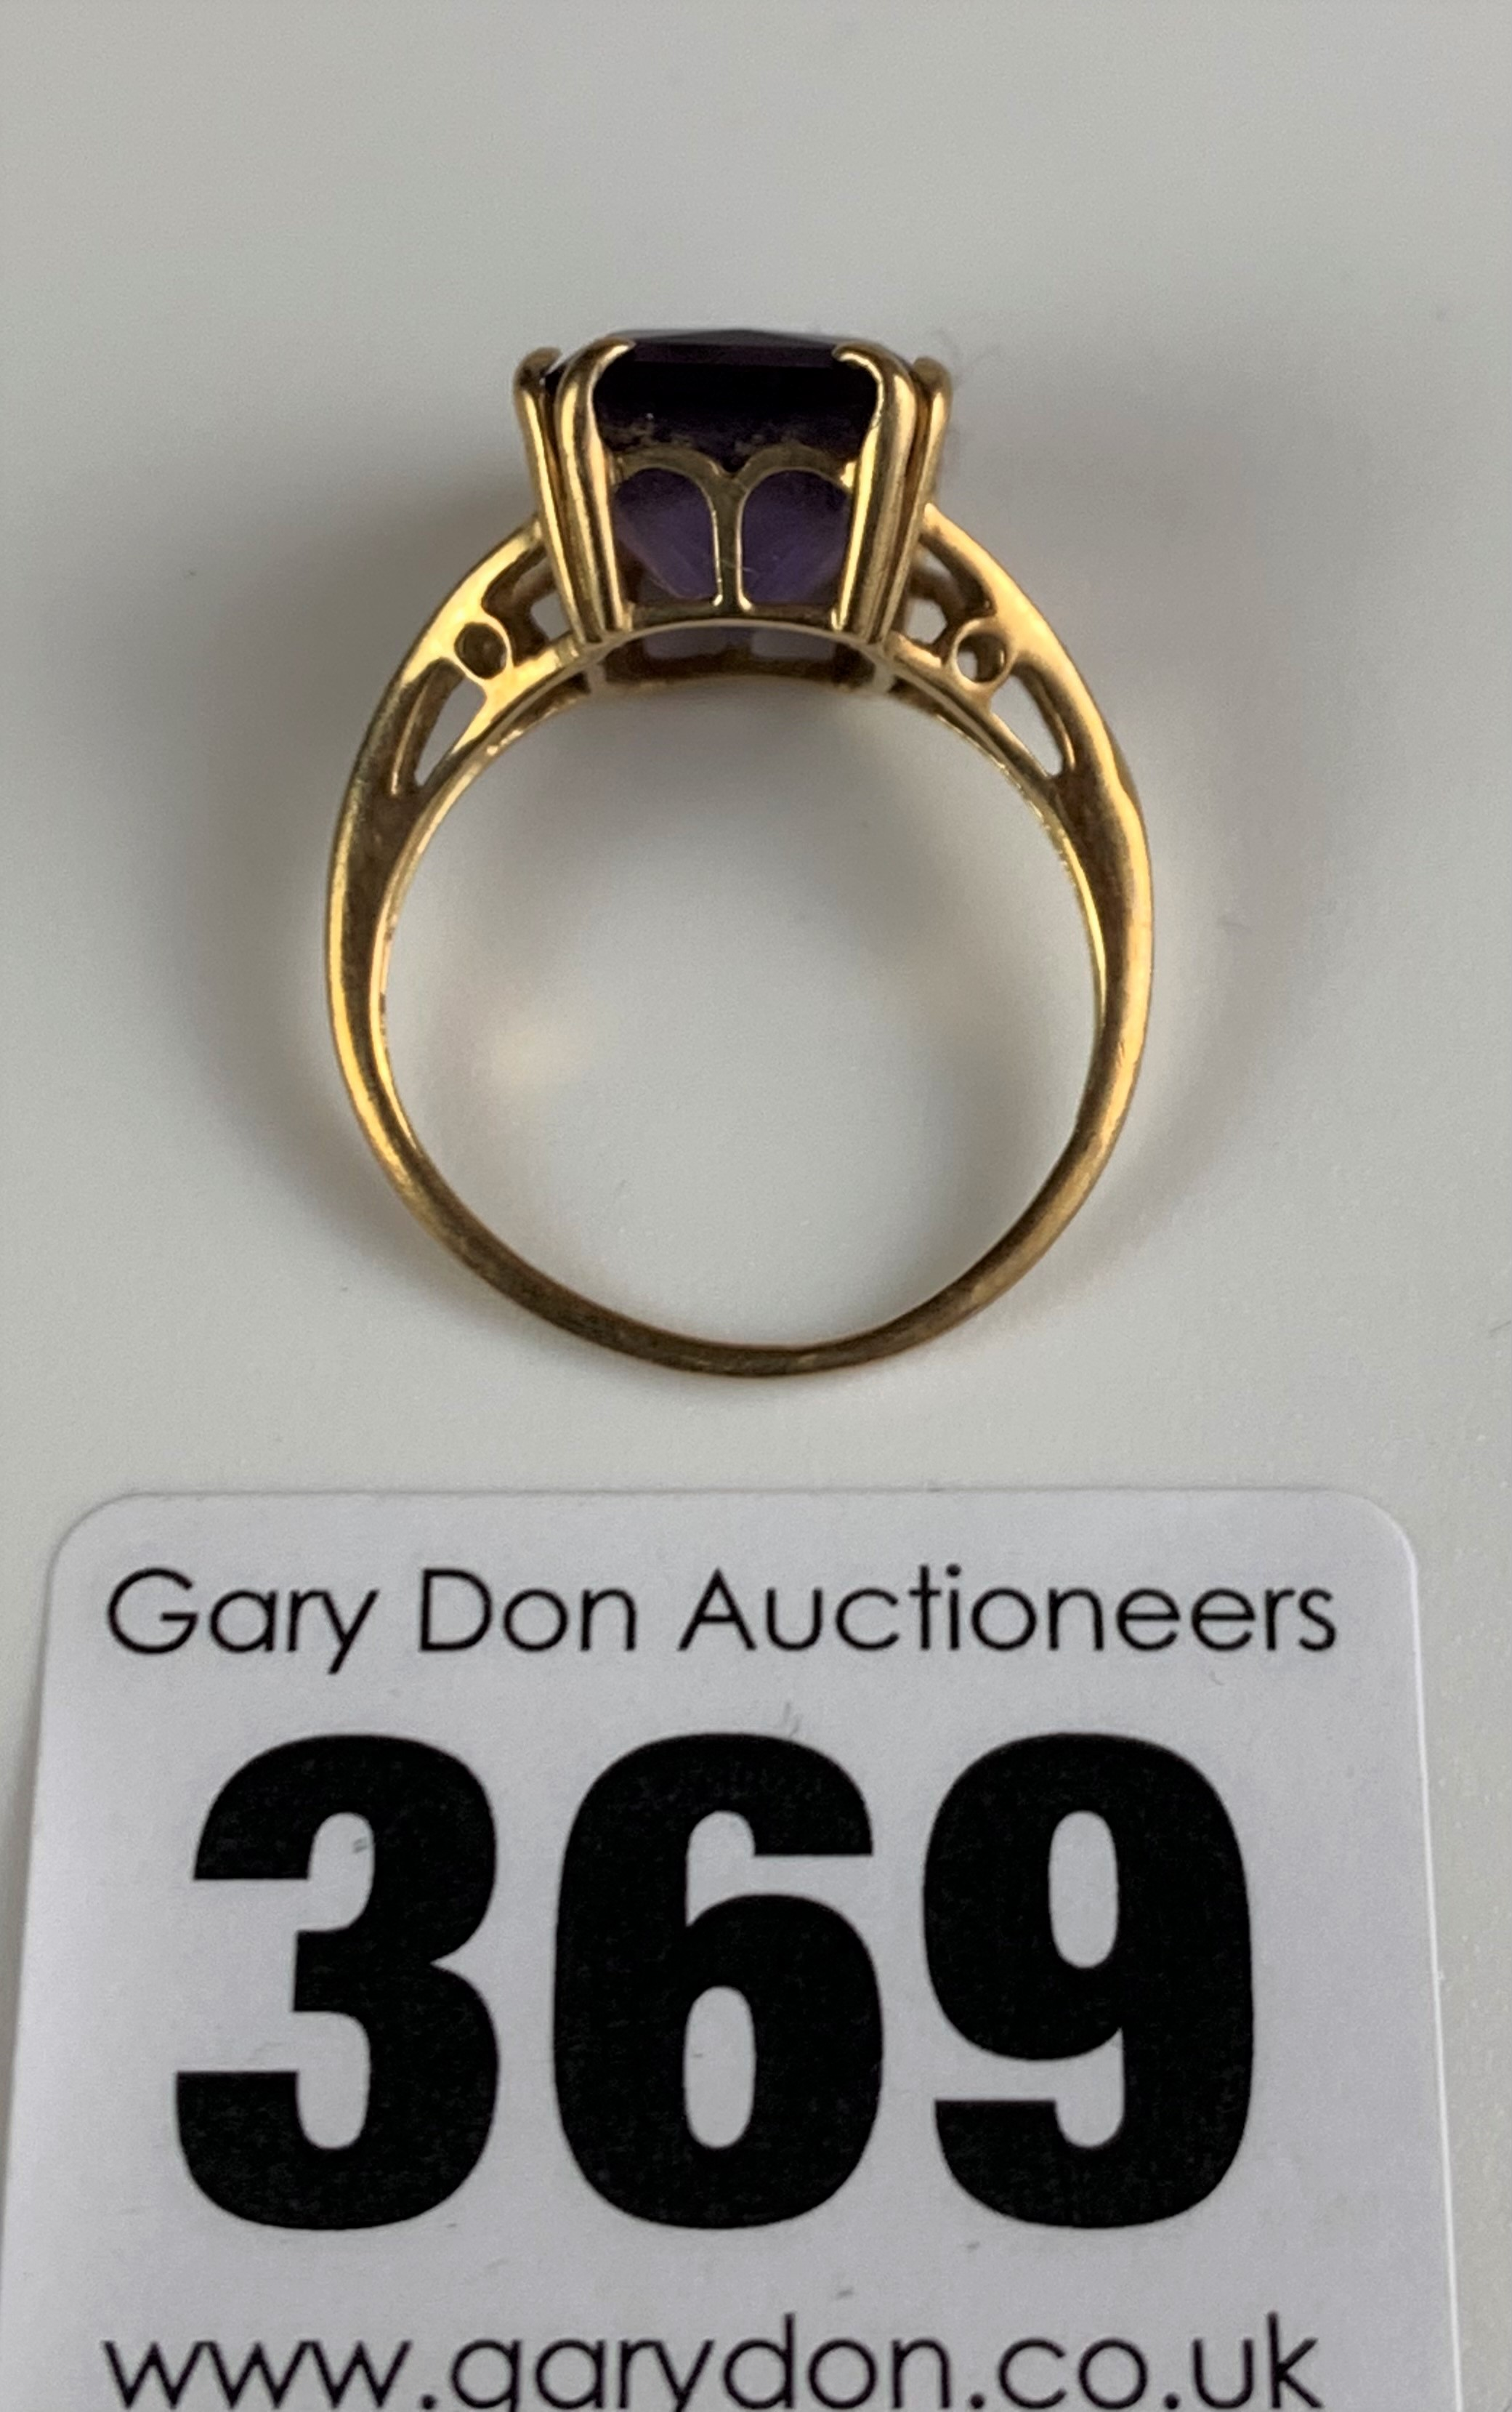 9k gold ring with purple stone, size L, w: 2.6 gms - Image 5 of 6